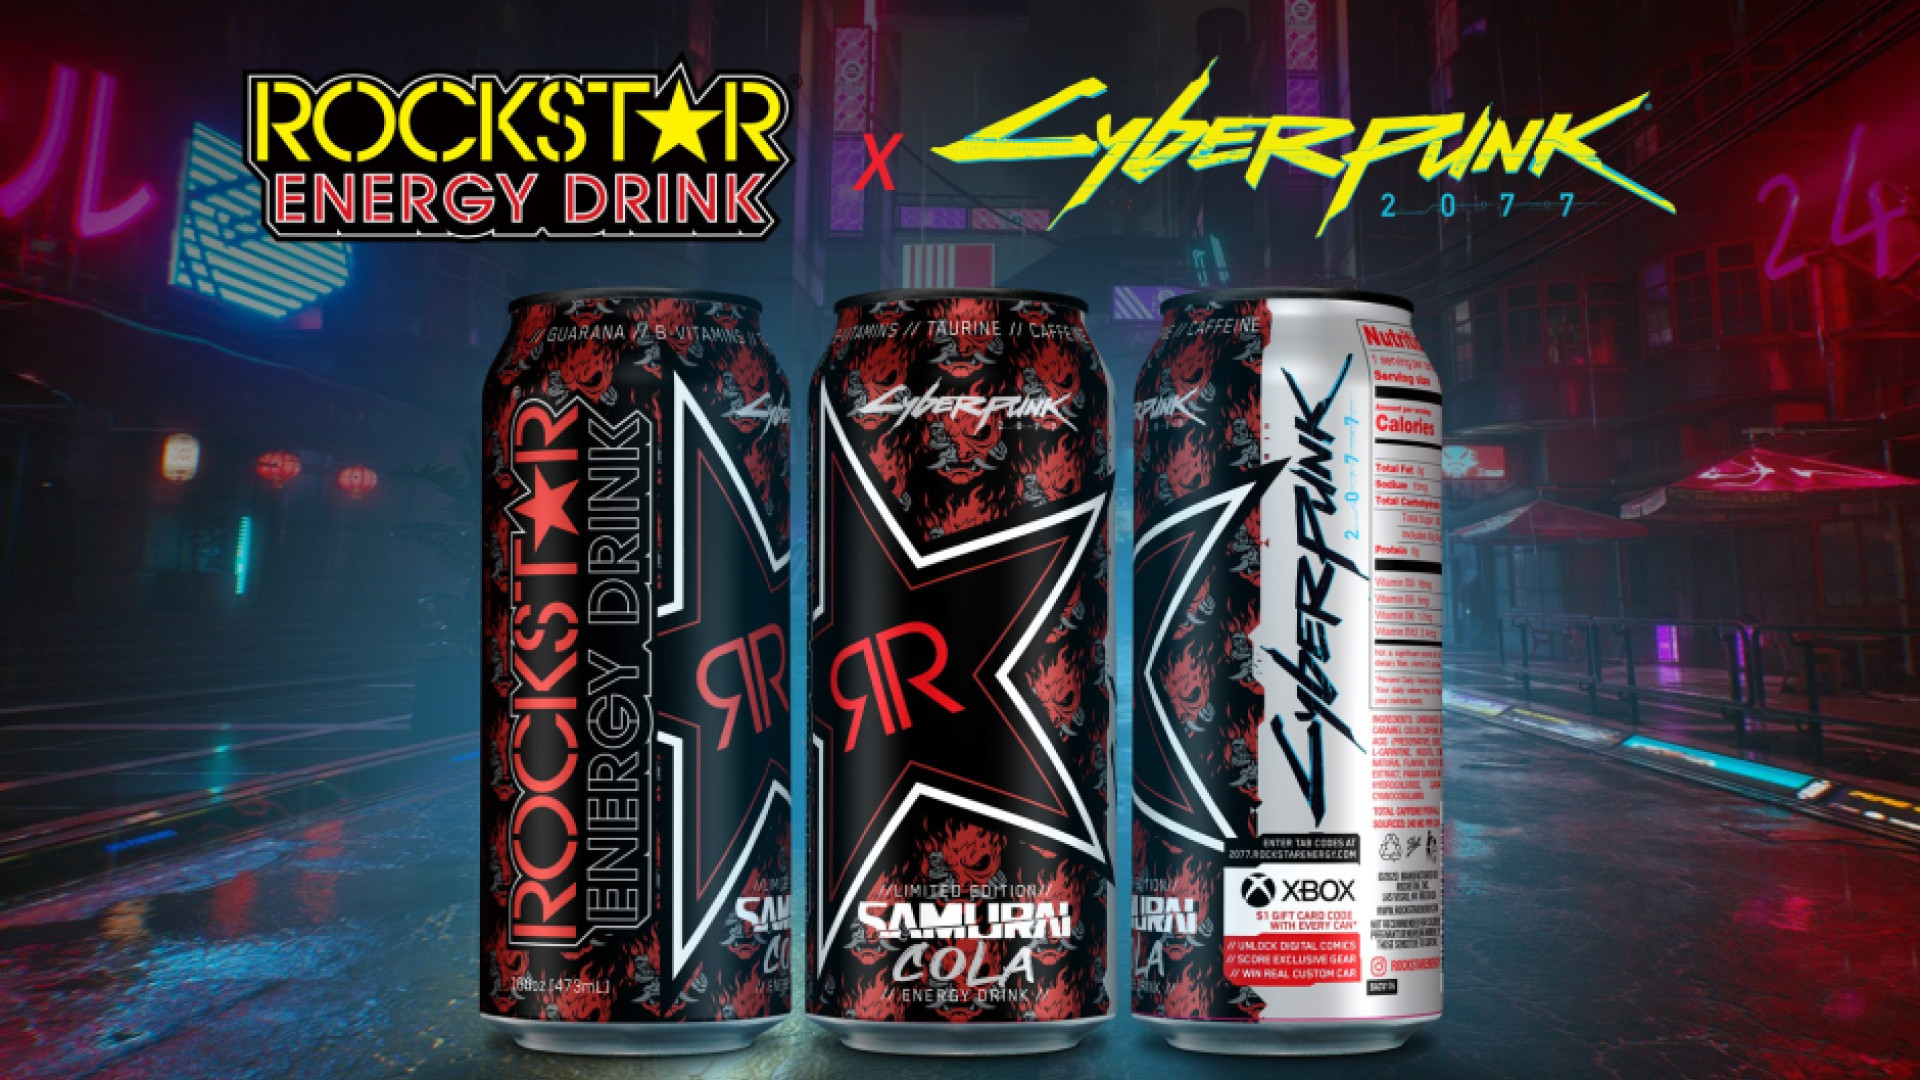 CD Projekt Red and Rockstar Energy Partner